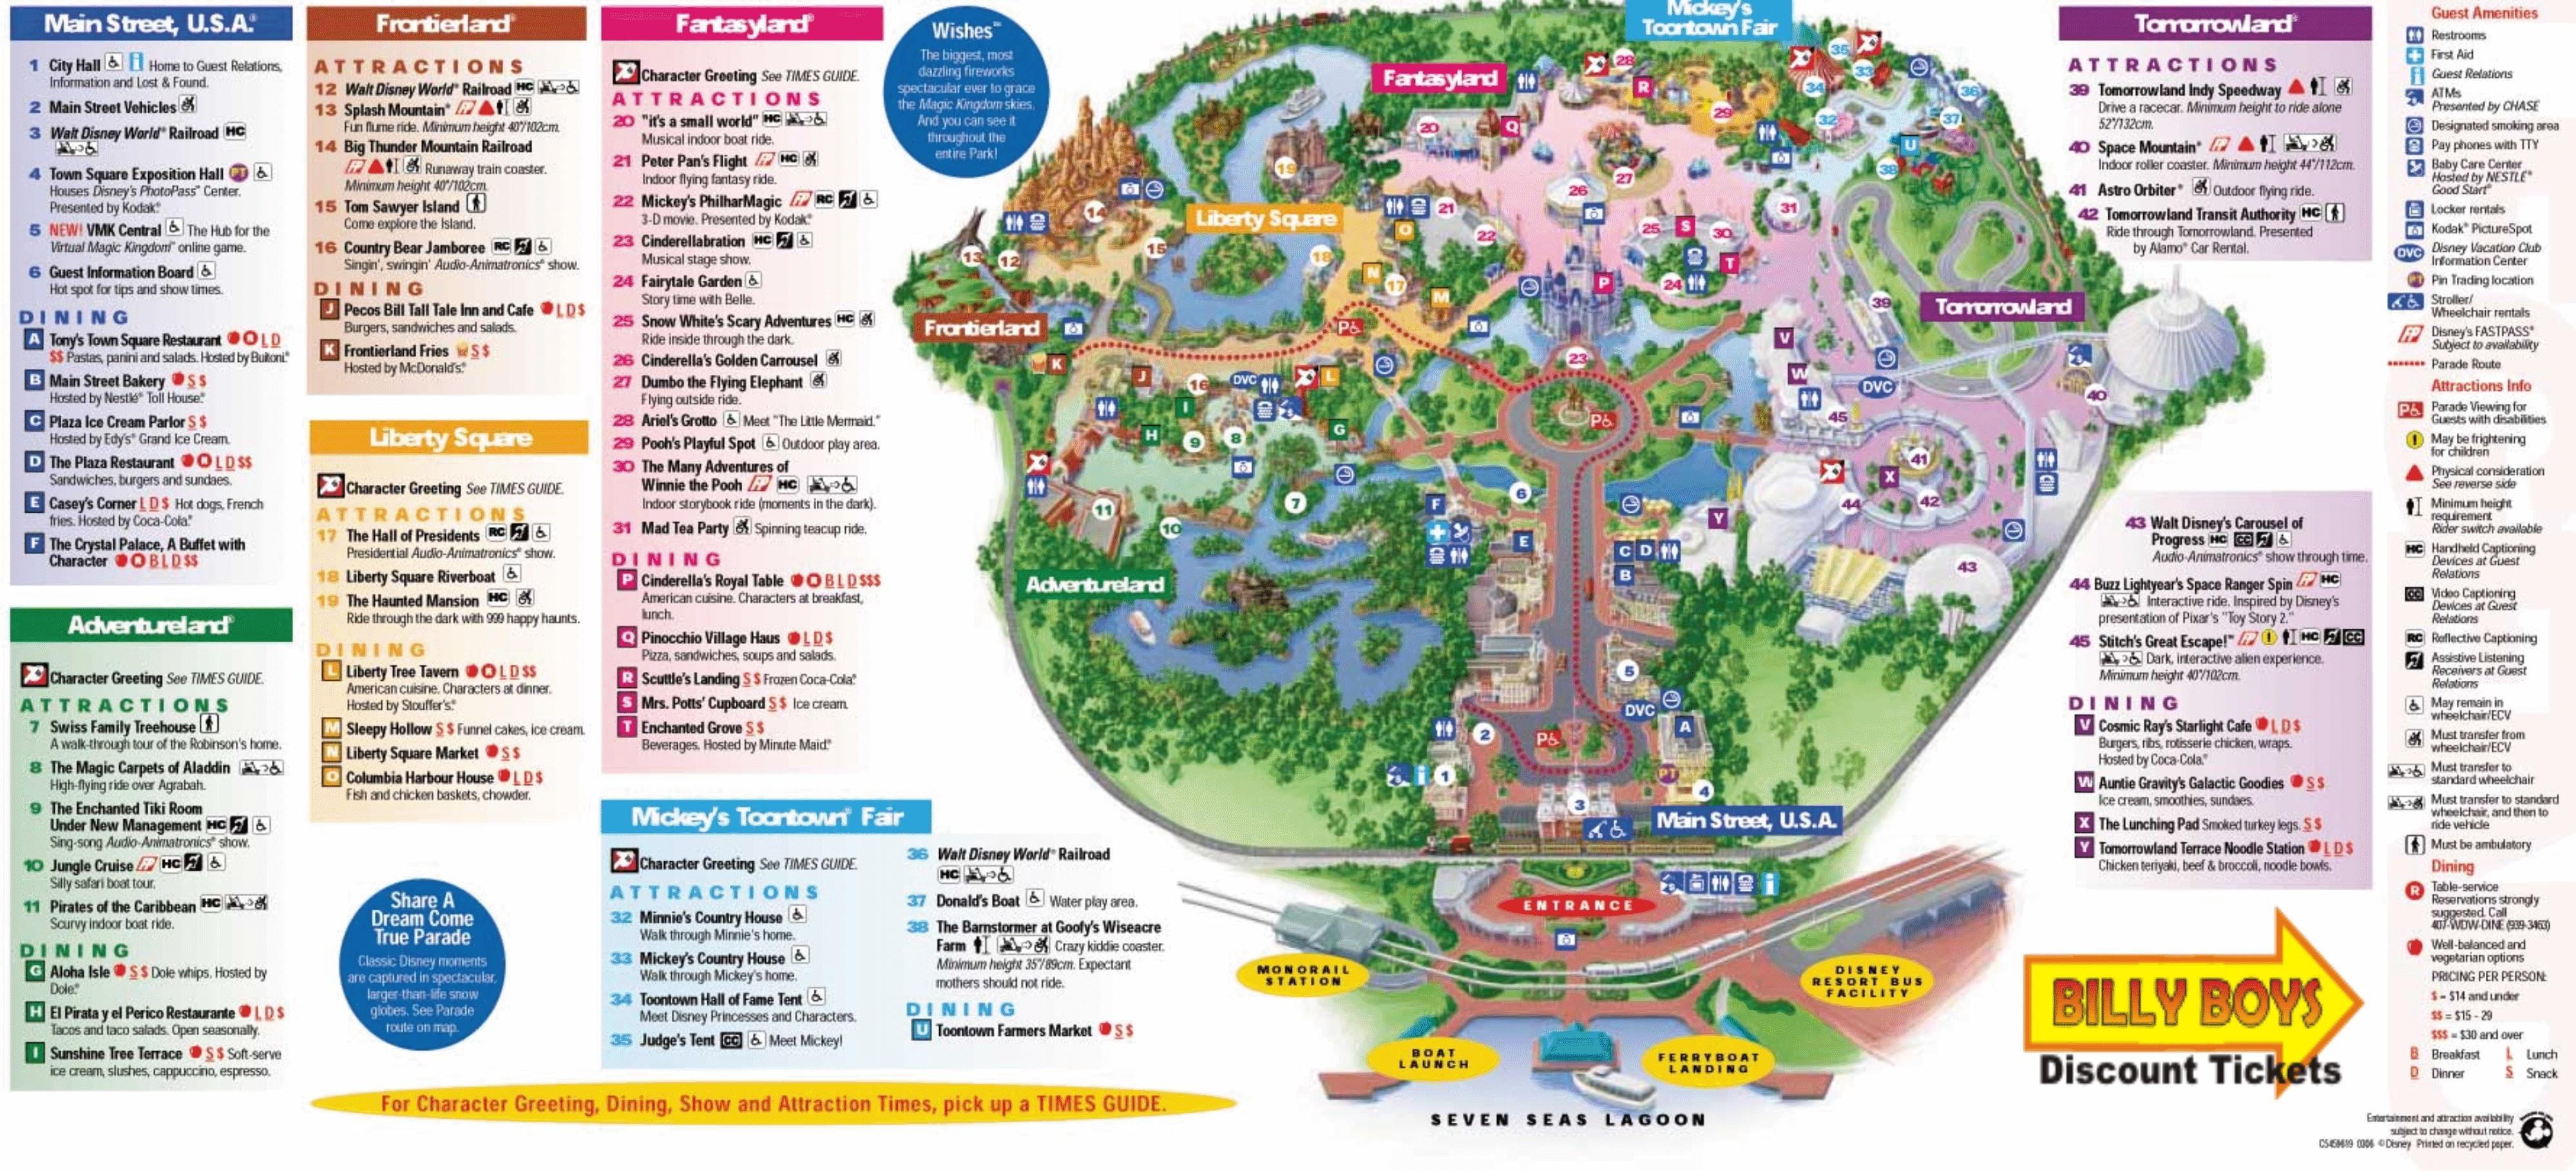 Printable Map Magic Kingdom Inspirational Disney World Map Magic Kingdom Pdf Inspirationa Walt New Maps